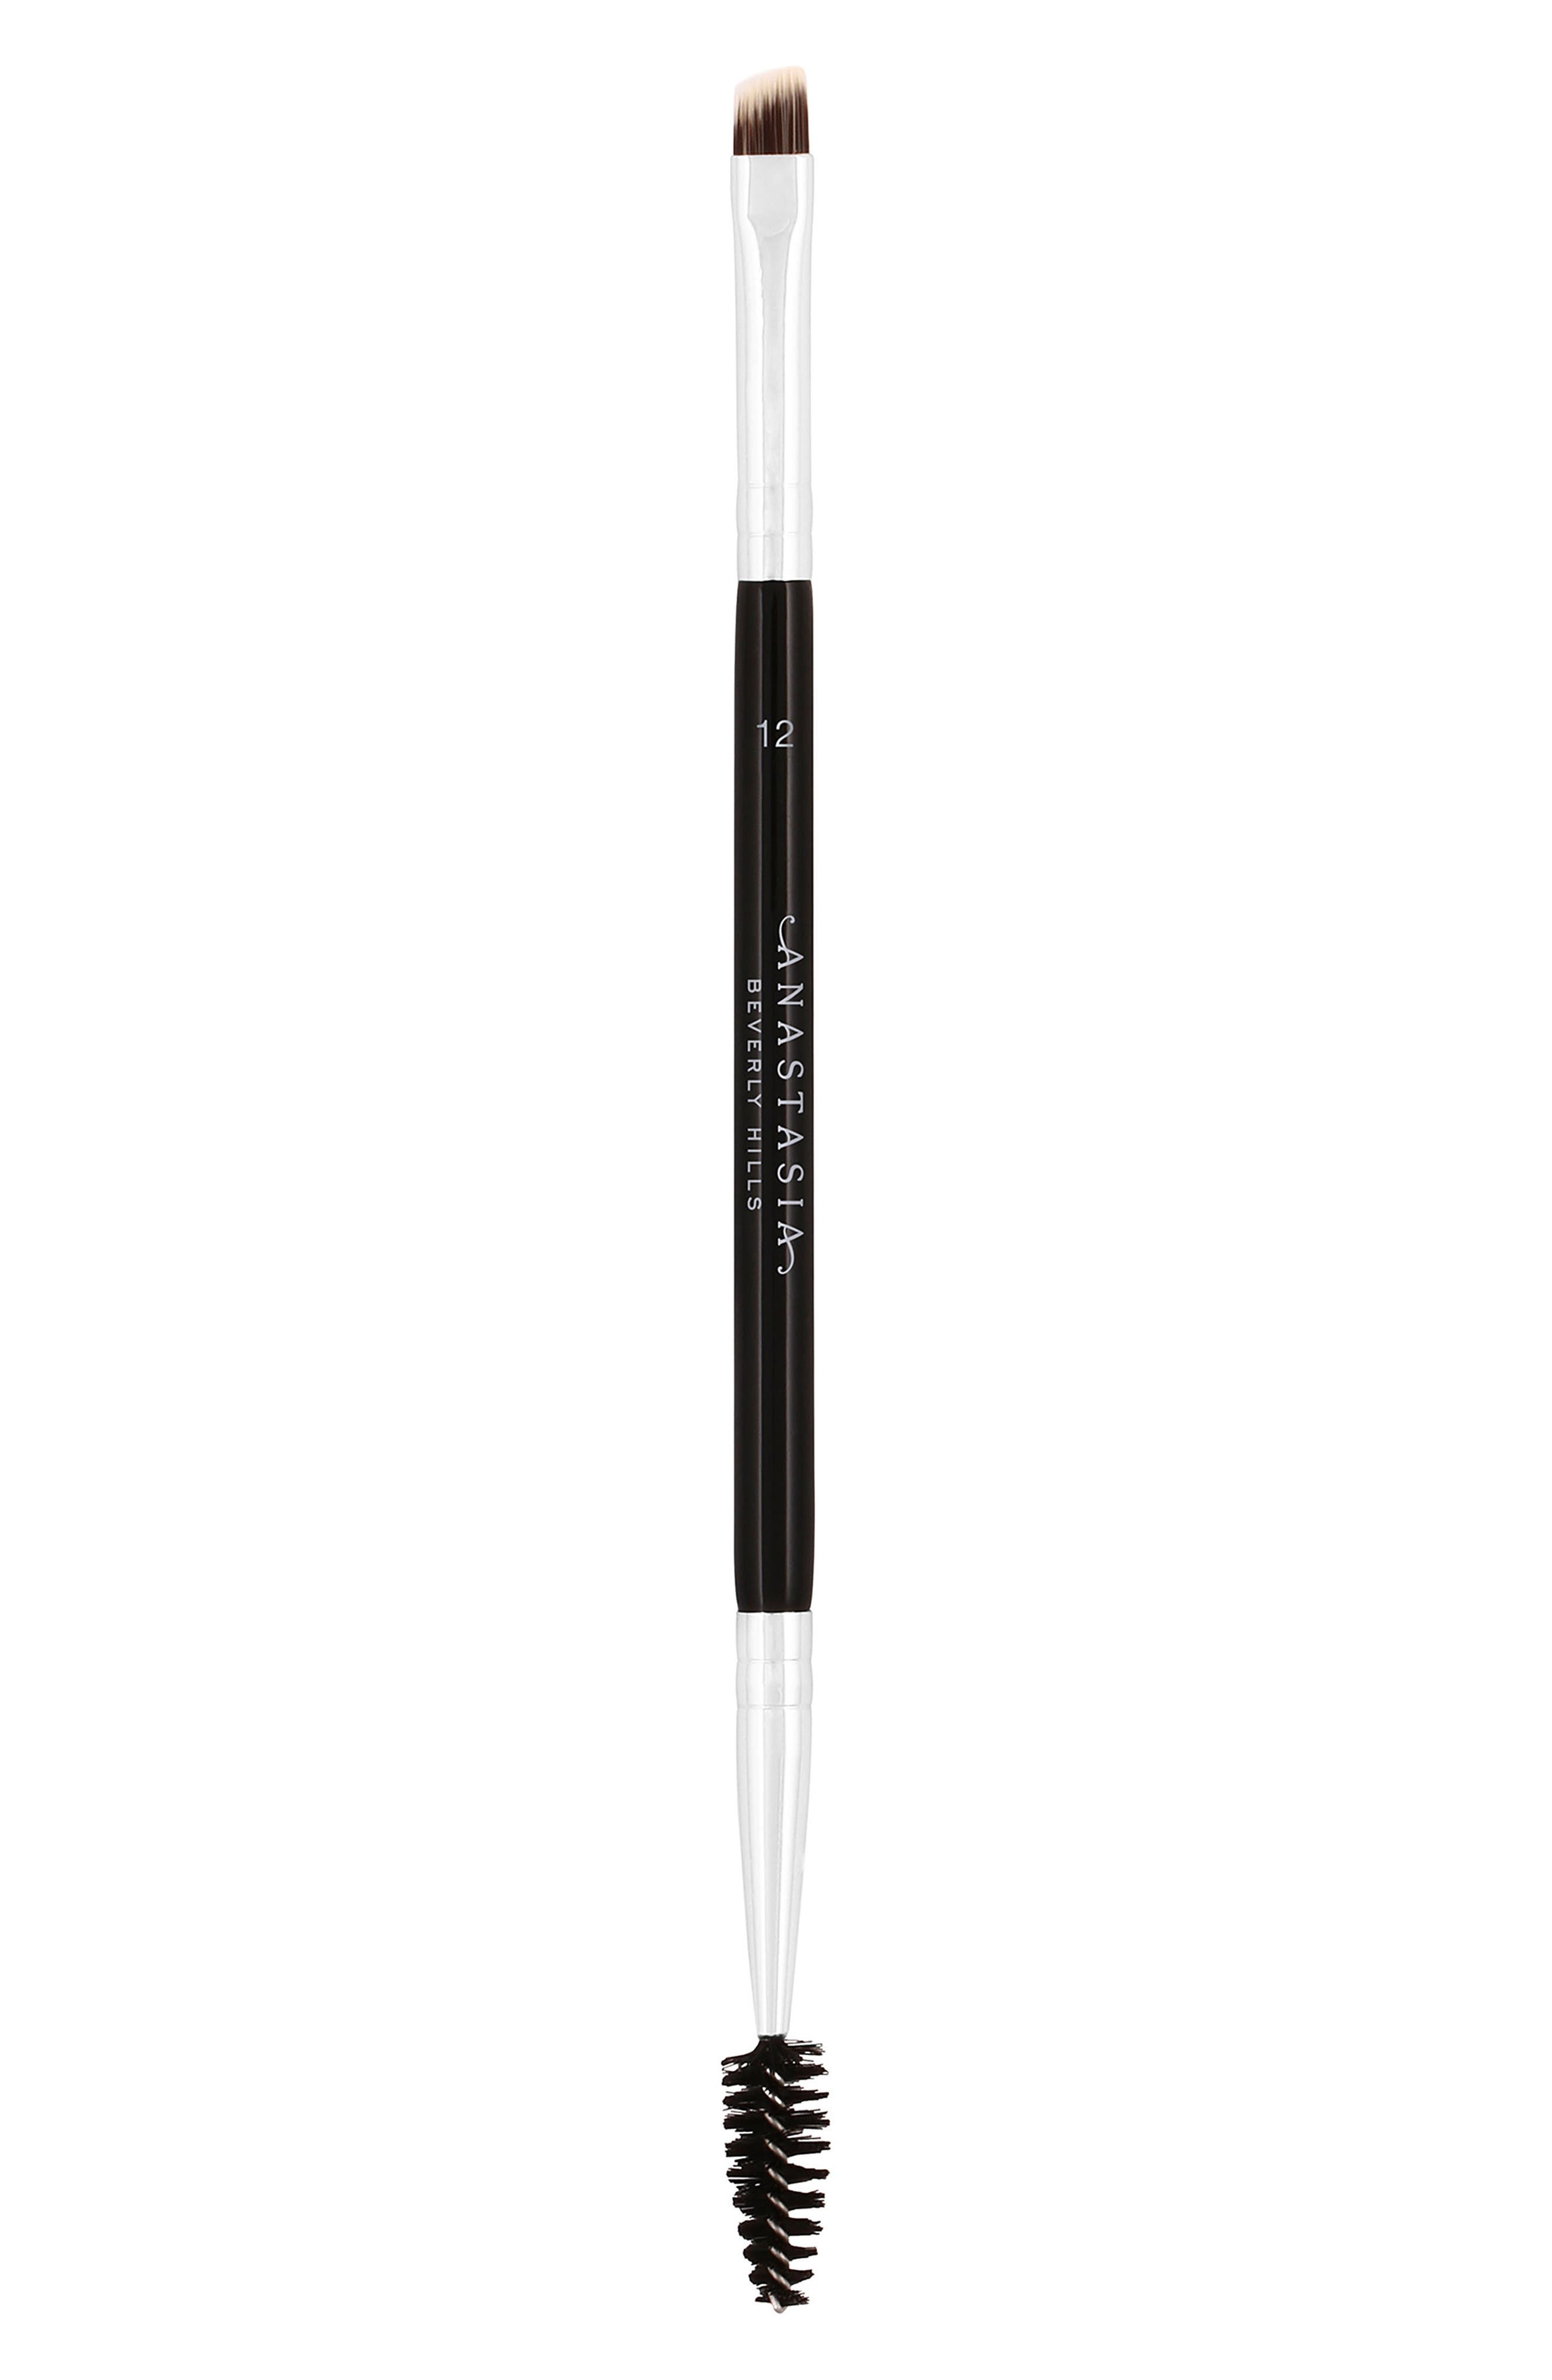 #12 Large Synthetic Duo Brow Brush,                             Alternate thumbnail 2, color,                             NO COLOR